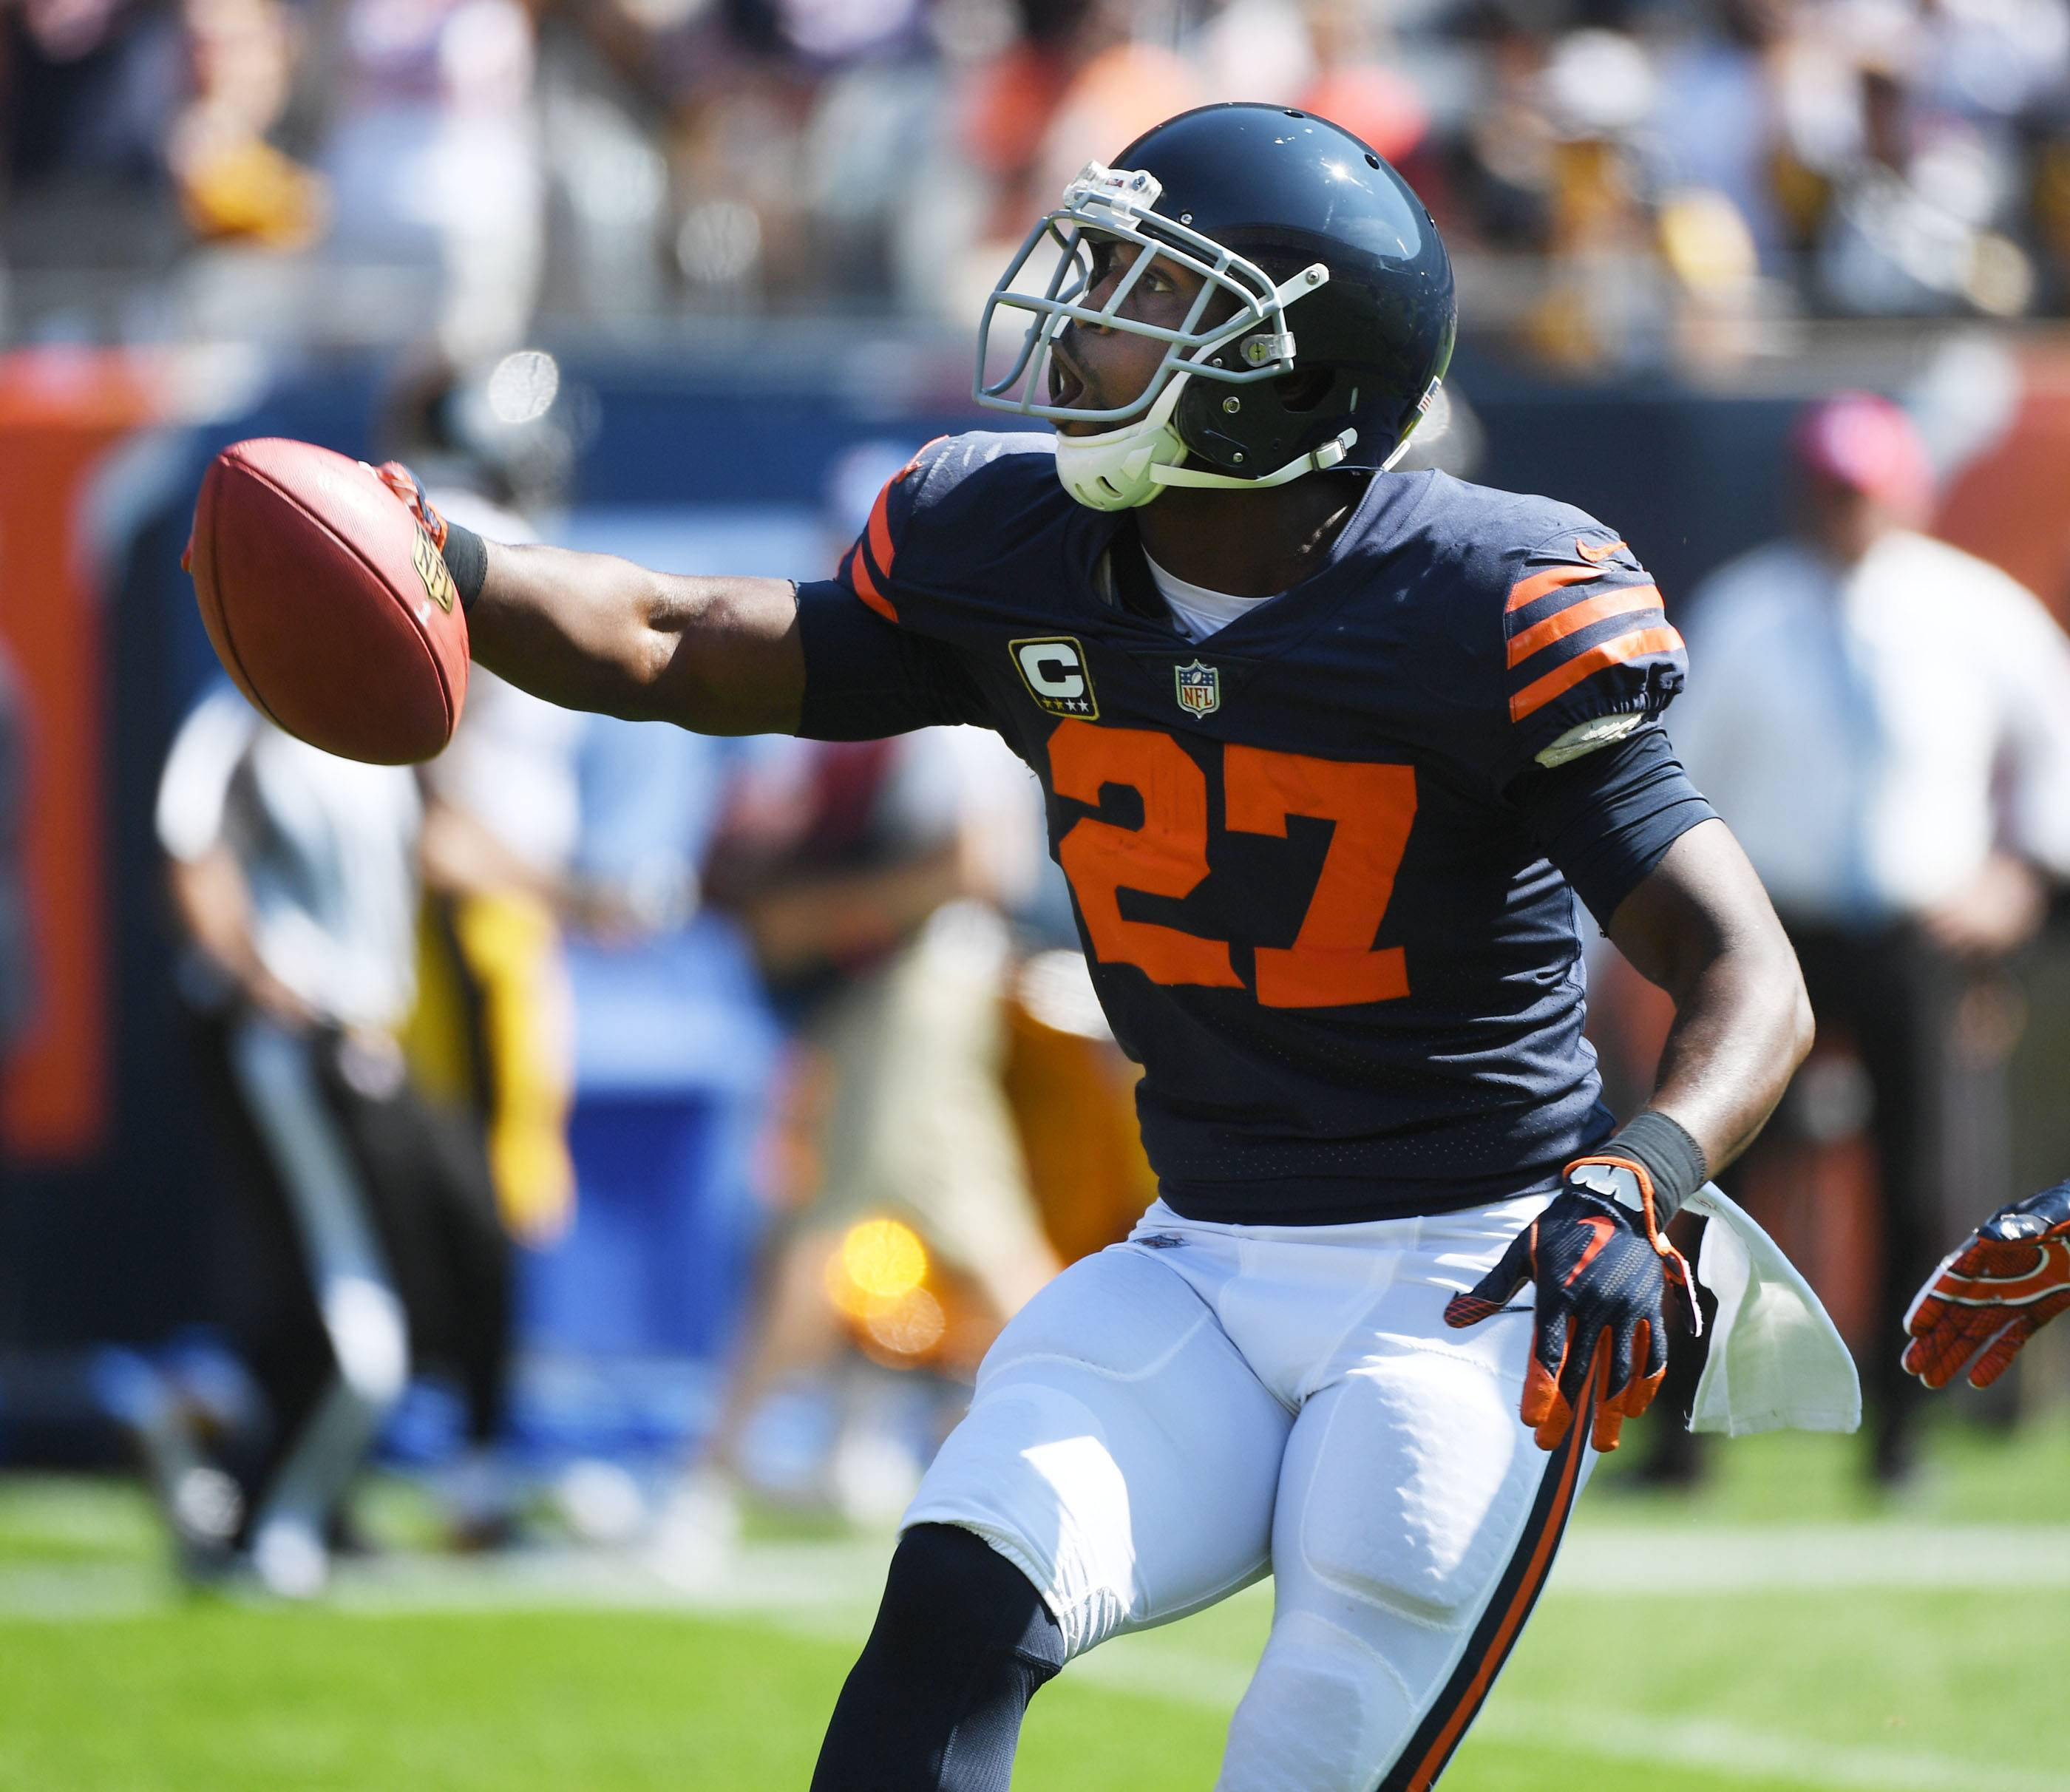 Rozner: Chicago Bears find a way to win crazy game